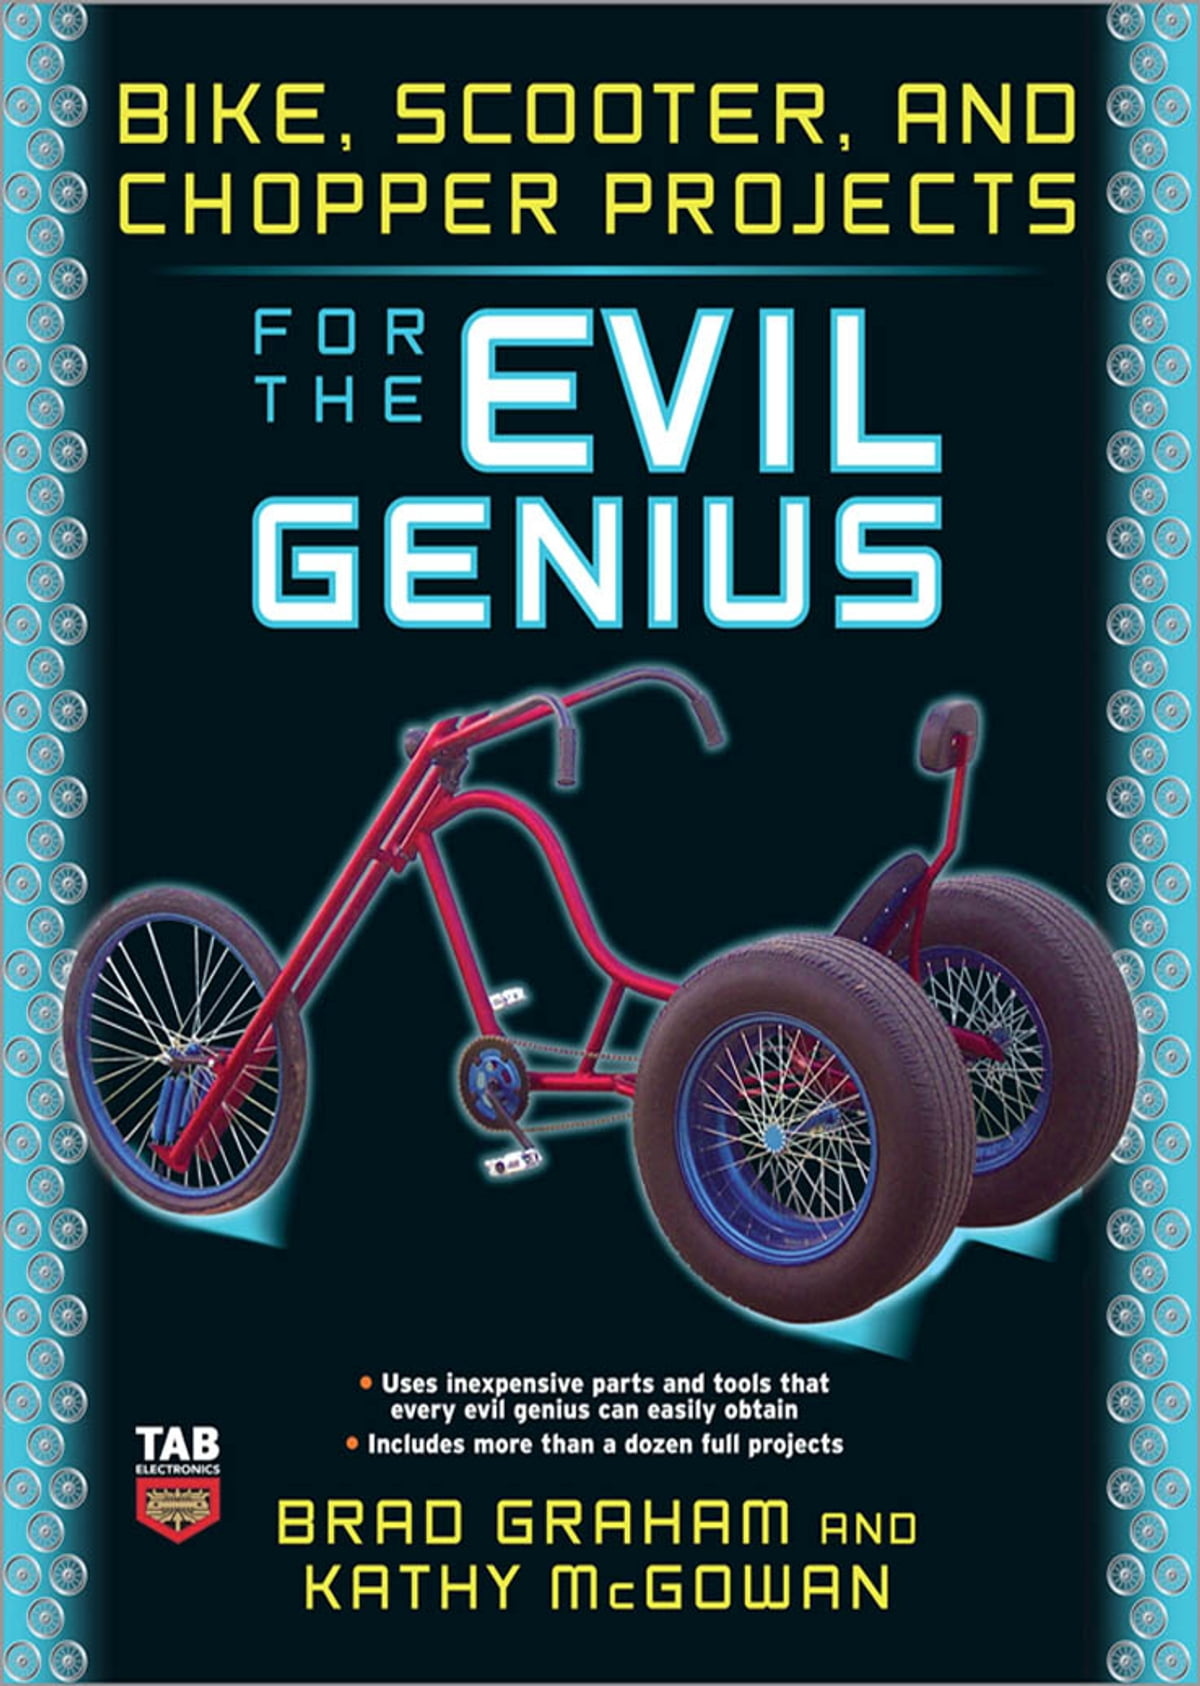 Bike, Scooter, and Chopper Projects for the Evil Genius ebook by Brad  Graham - Rakuten Kobo